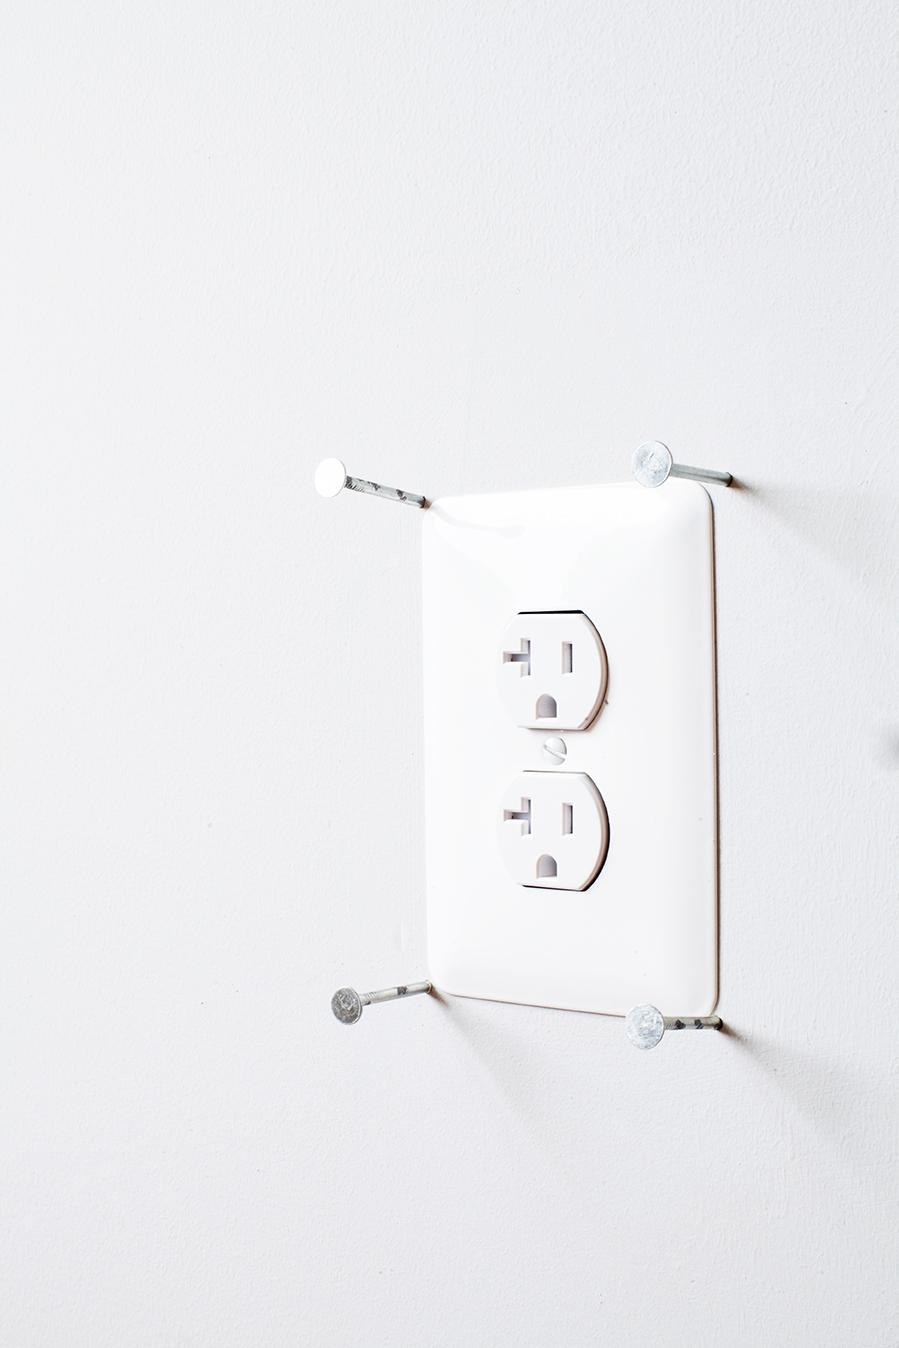 Pro Tip: Make sure to put four nails around any outlets like this. (Image: Ashley Hafstead)